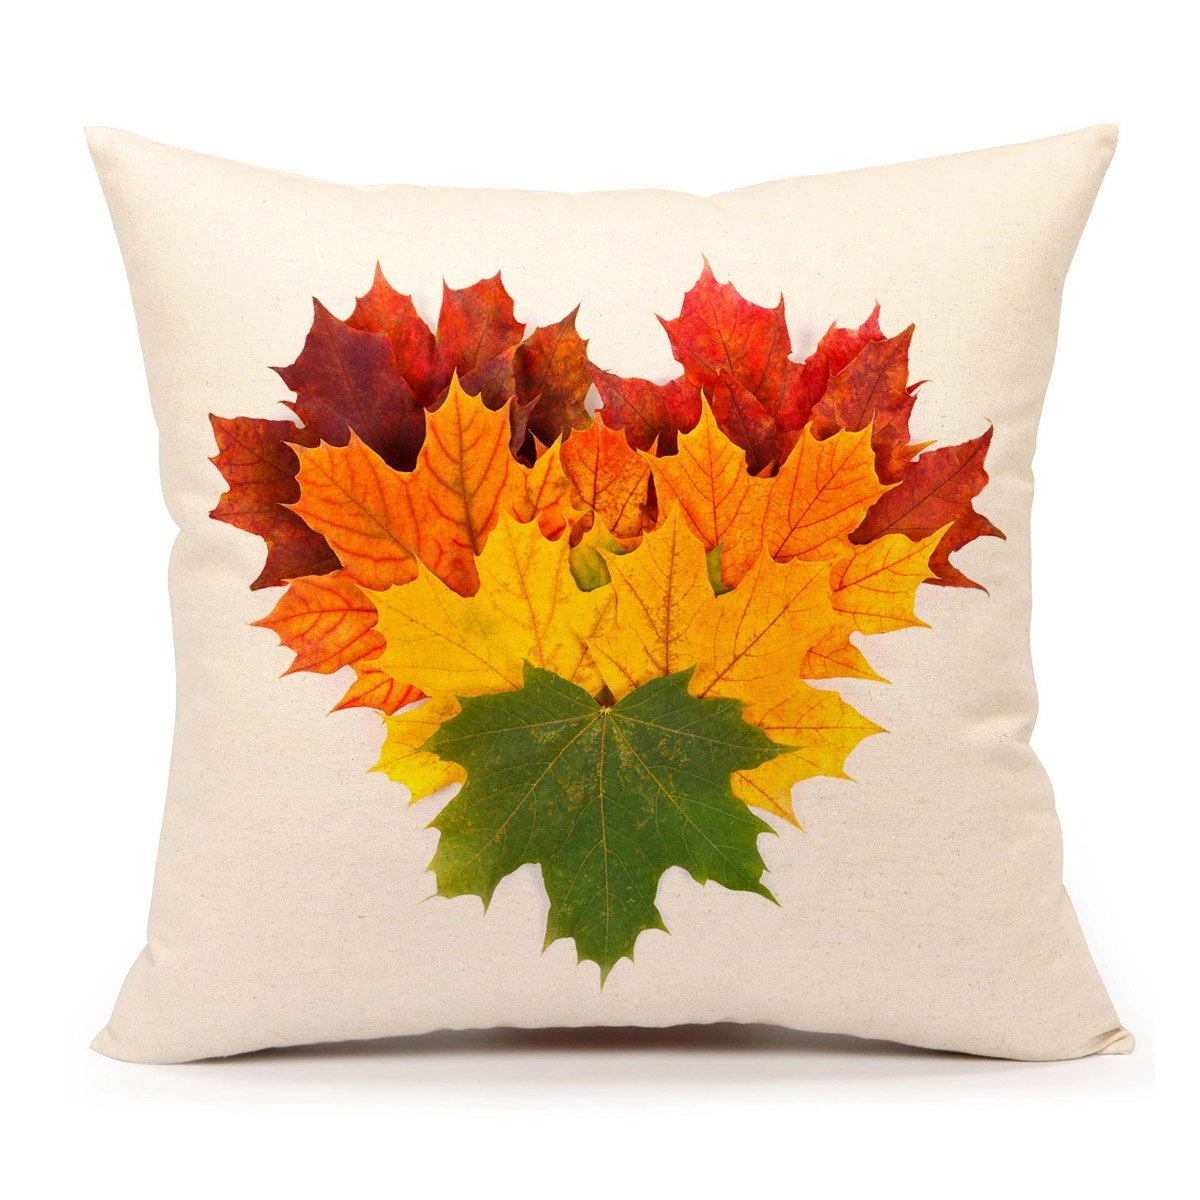 4TH Emotion Autumn Leaves Fall Thanksgiving Home Decor Throw Pillow Cover Cushion Case 18 x 18 Inch Cotton Linen for Sofa Yellow Green COMIN18JU065199